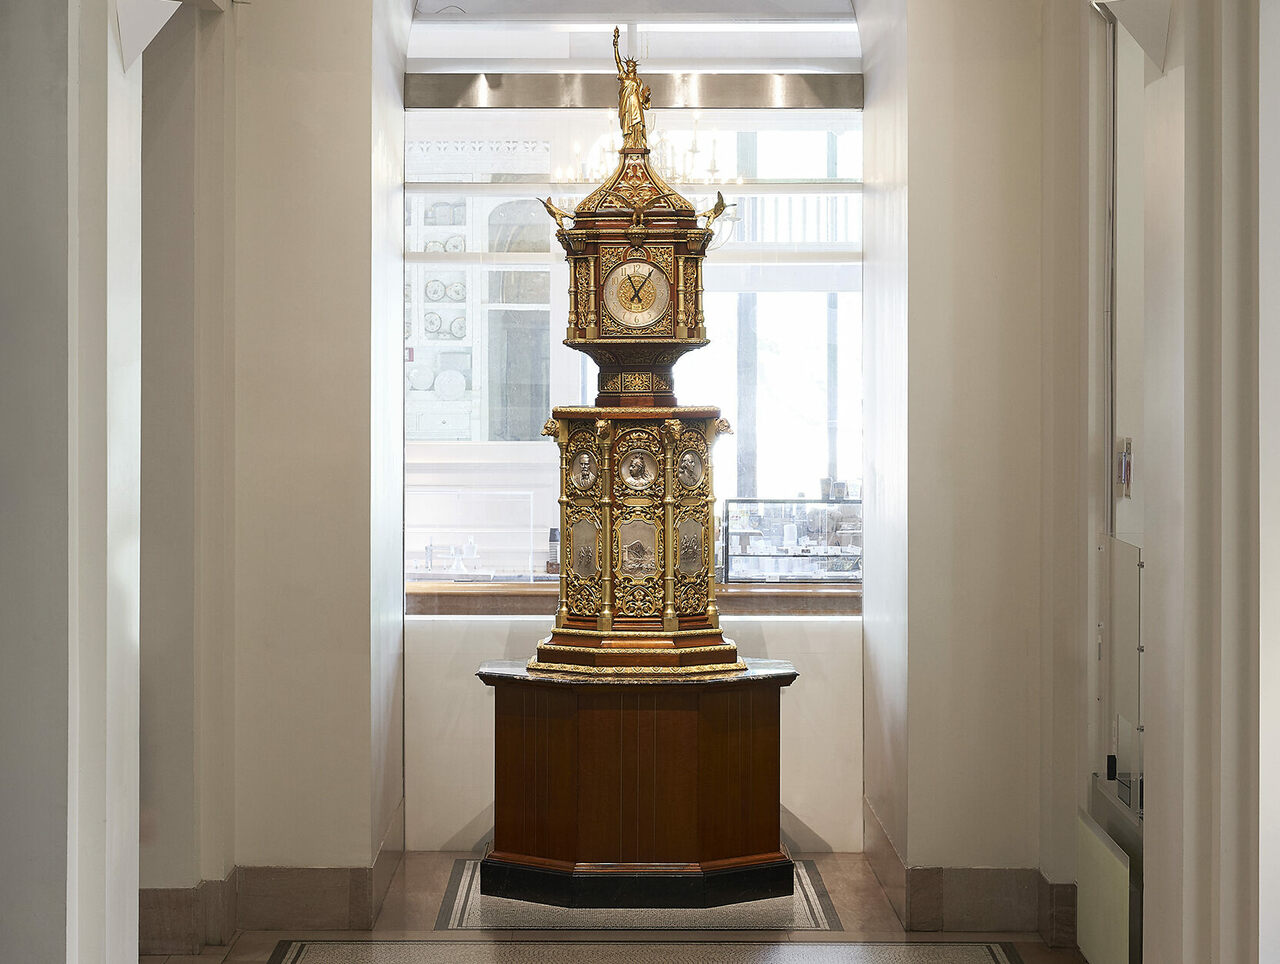 The restored clock is currently on display at the New-York Historical Society. It will reclaim its place in the lobby of the Waldorf Astoria when renovations on the hotel are complete.